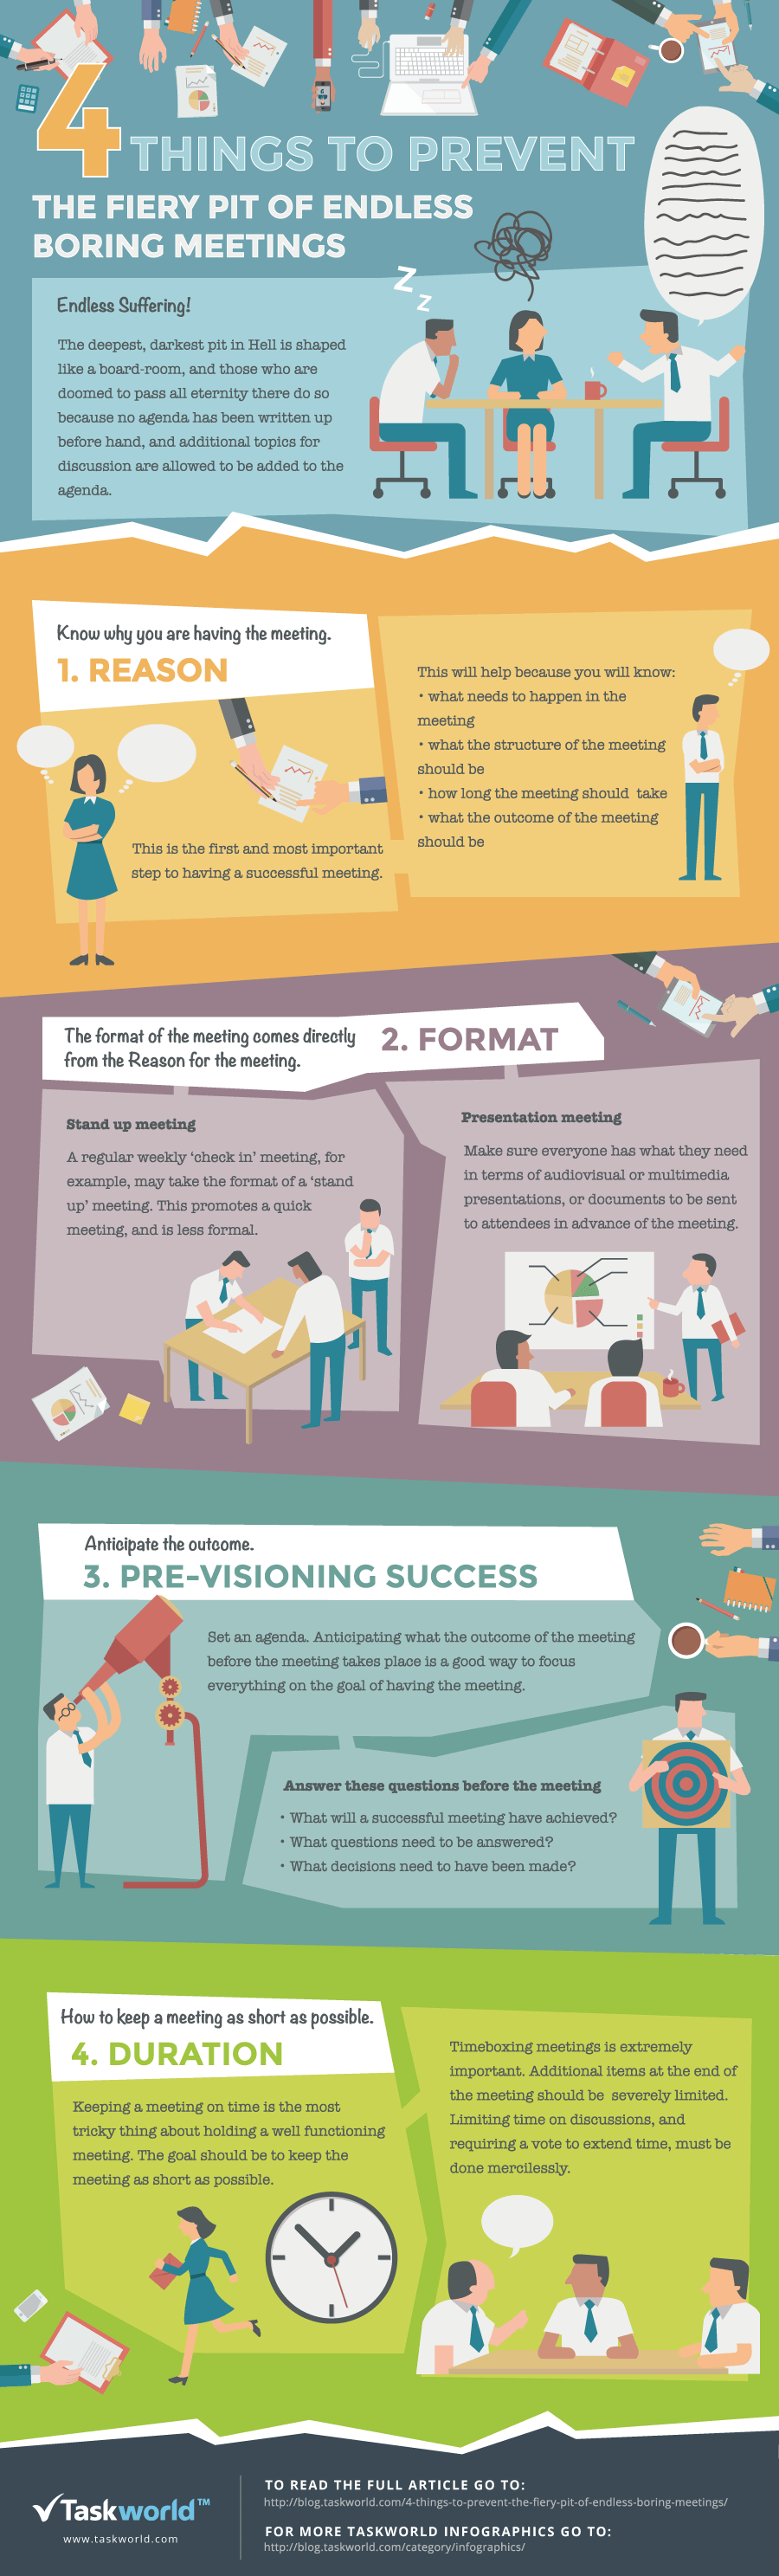 boring-meetings-infograhpic-plaza